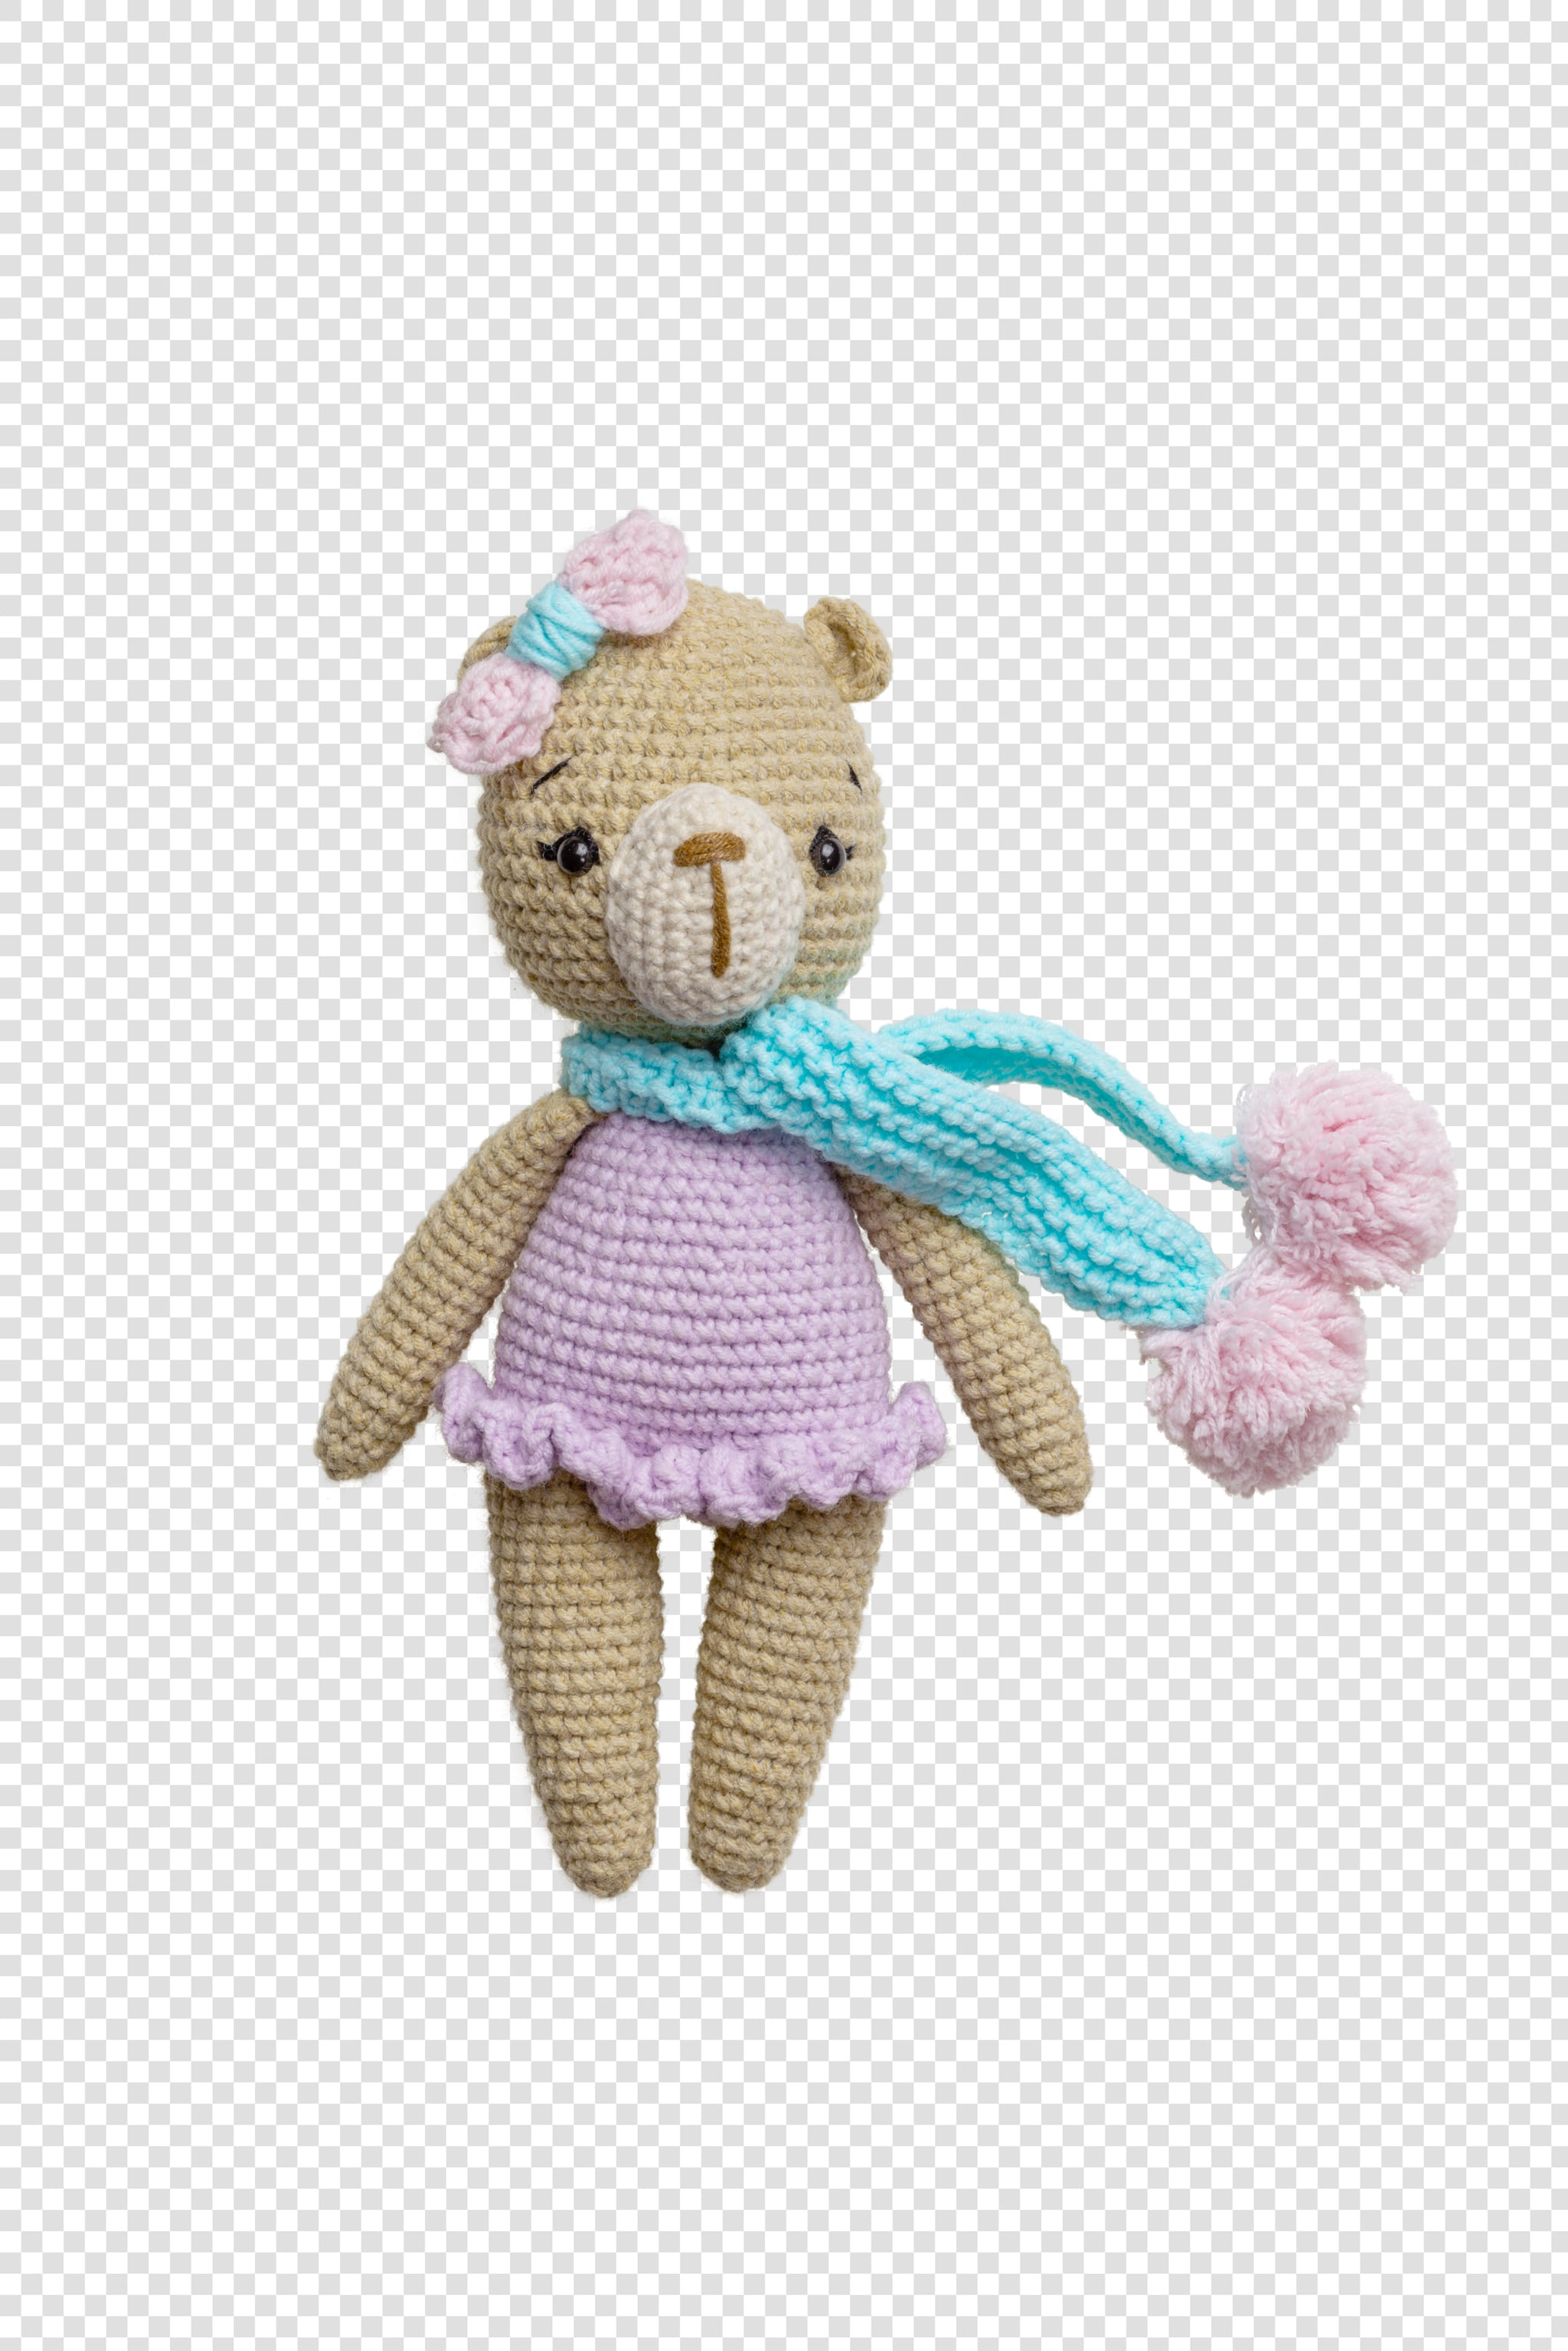 Craft toy PSD image on transparent background